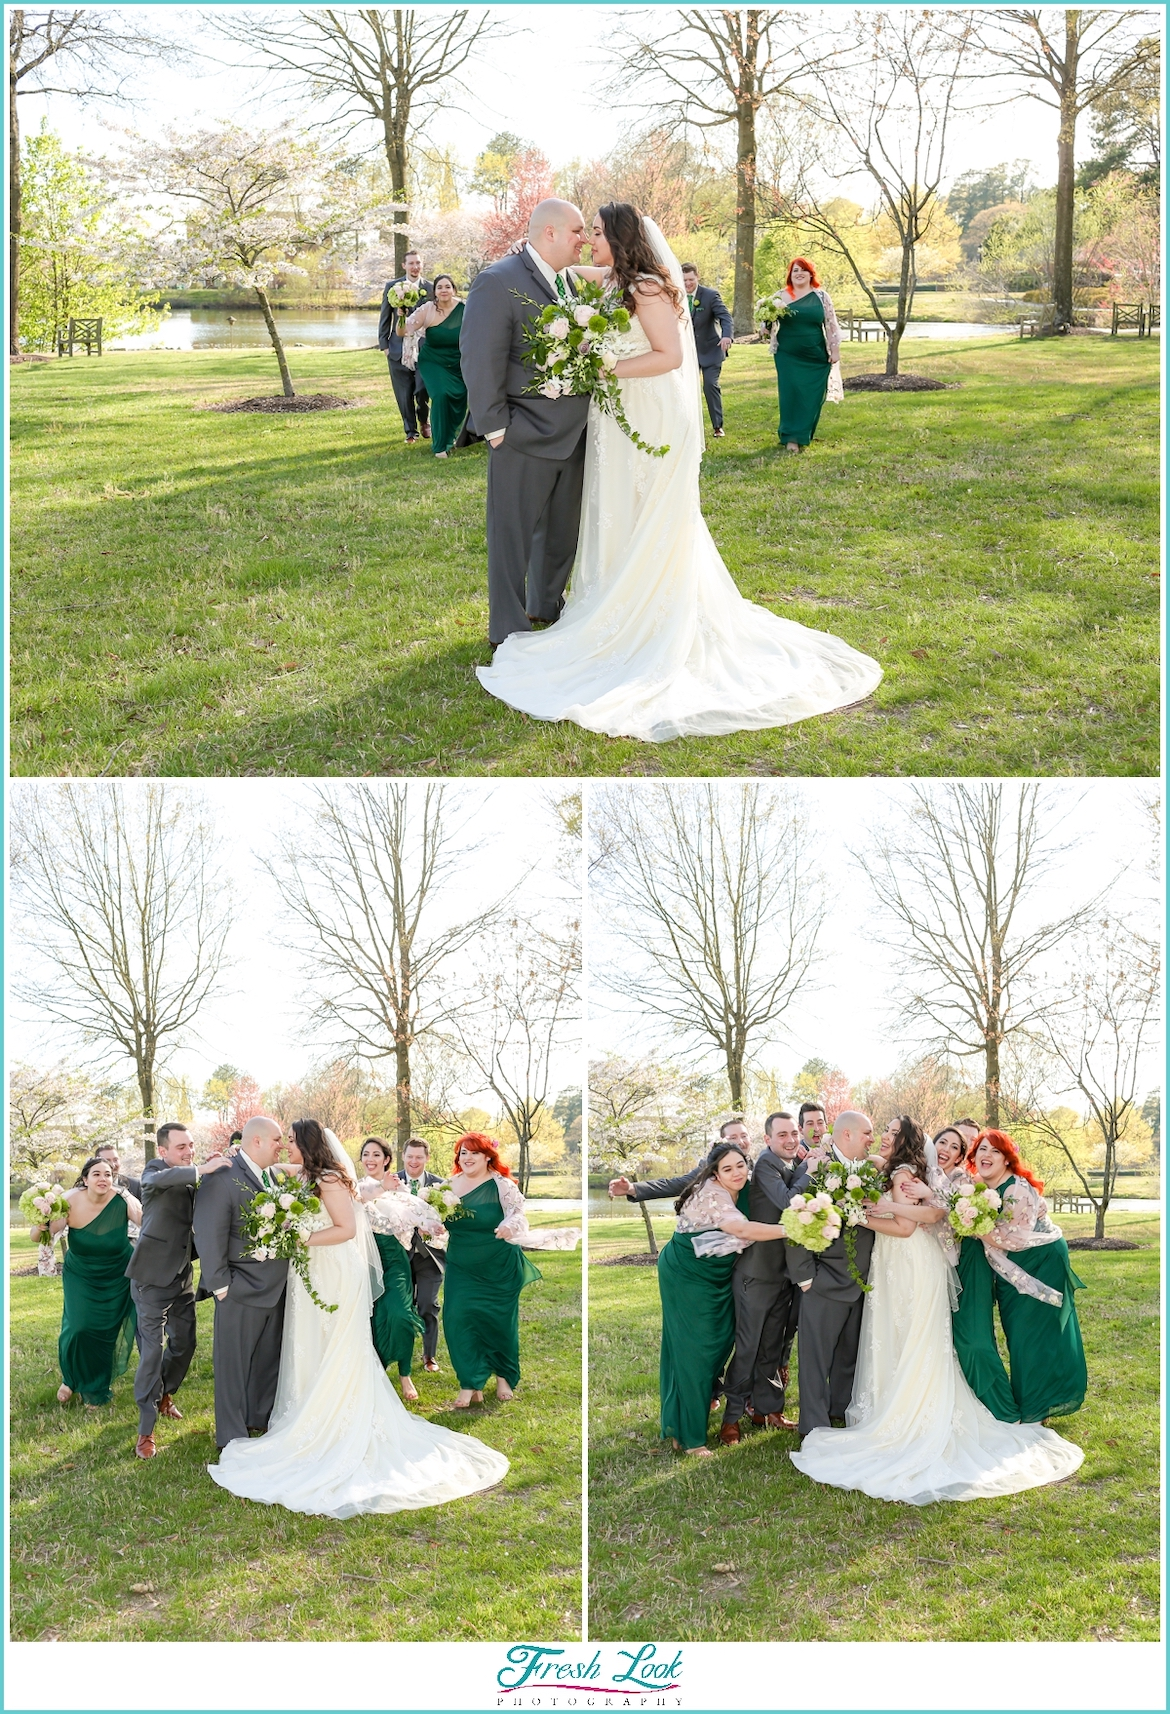 bridal party sneaking up on Bride and Groom